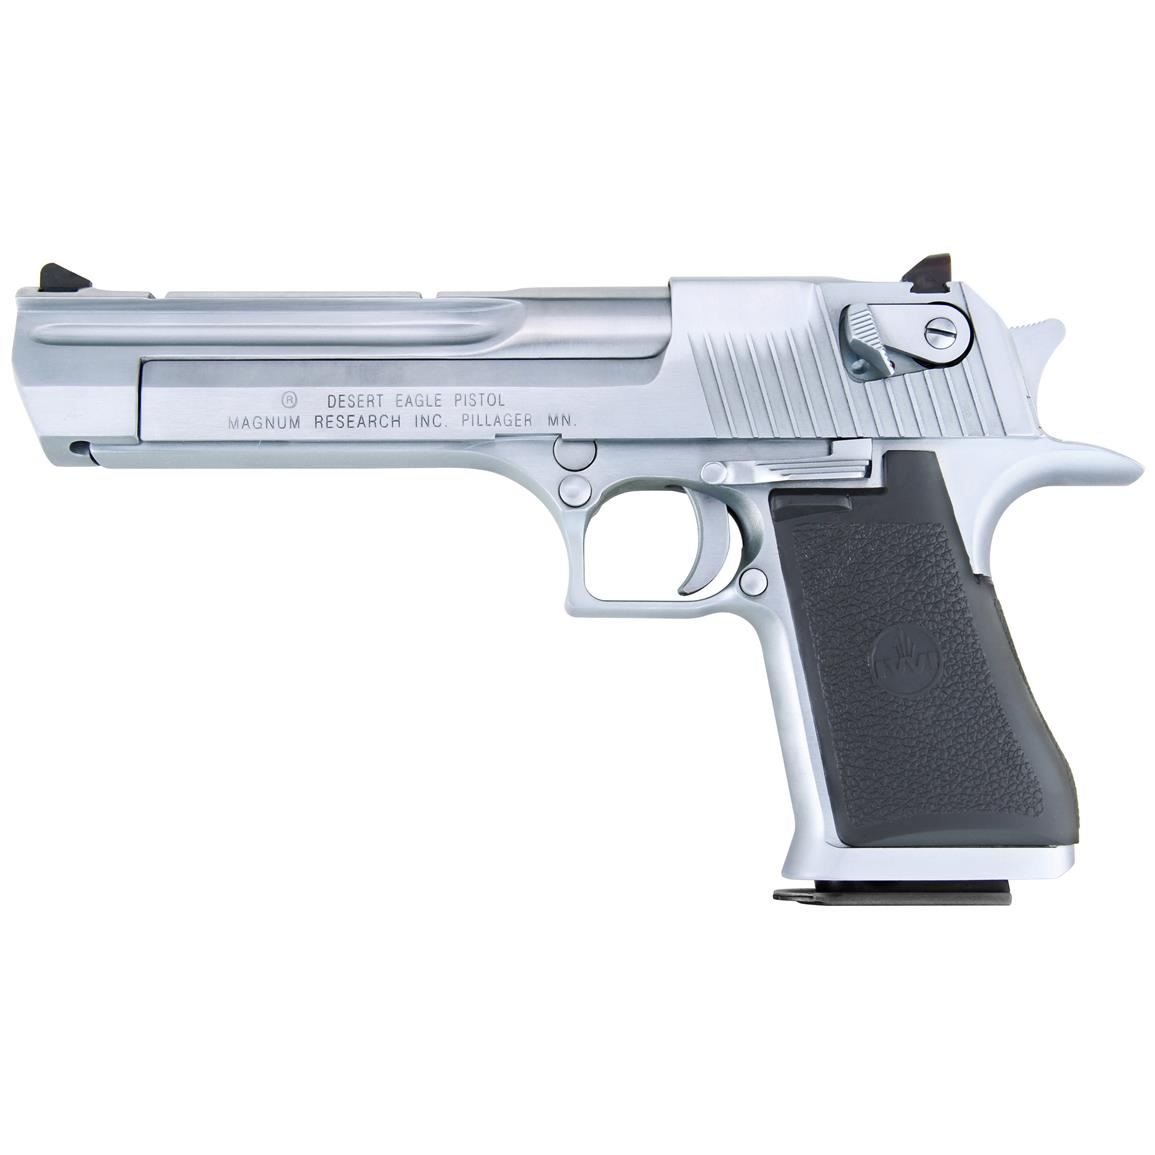 Magnum Research® Desert Eagle® Mark XIX, Semi-automatic, .44 Magnum, ZDE44CABC, 151550003031, BLEM